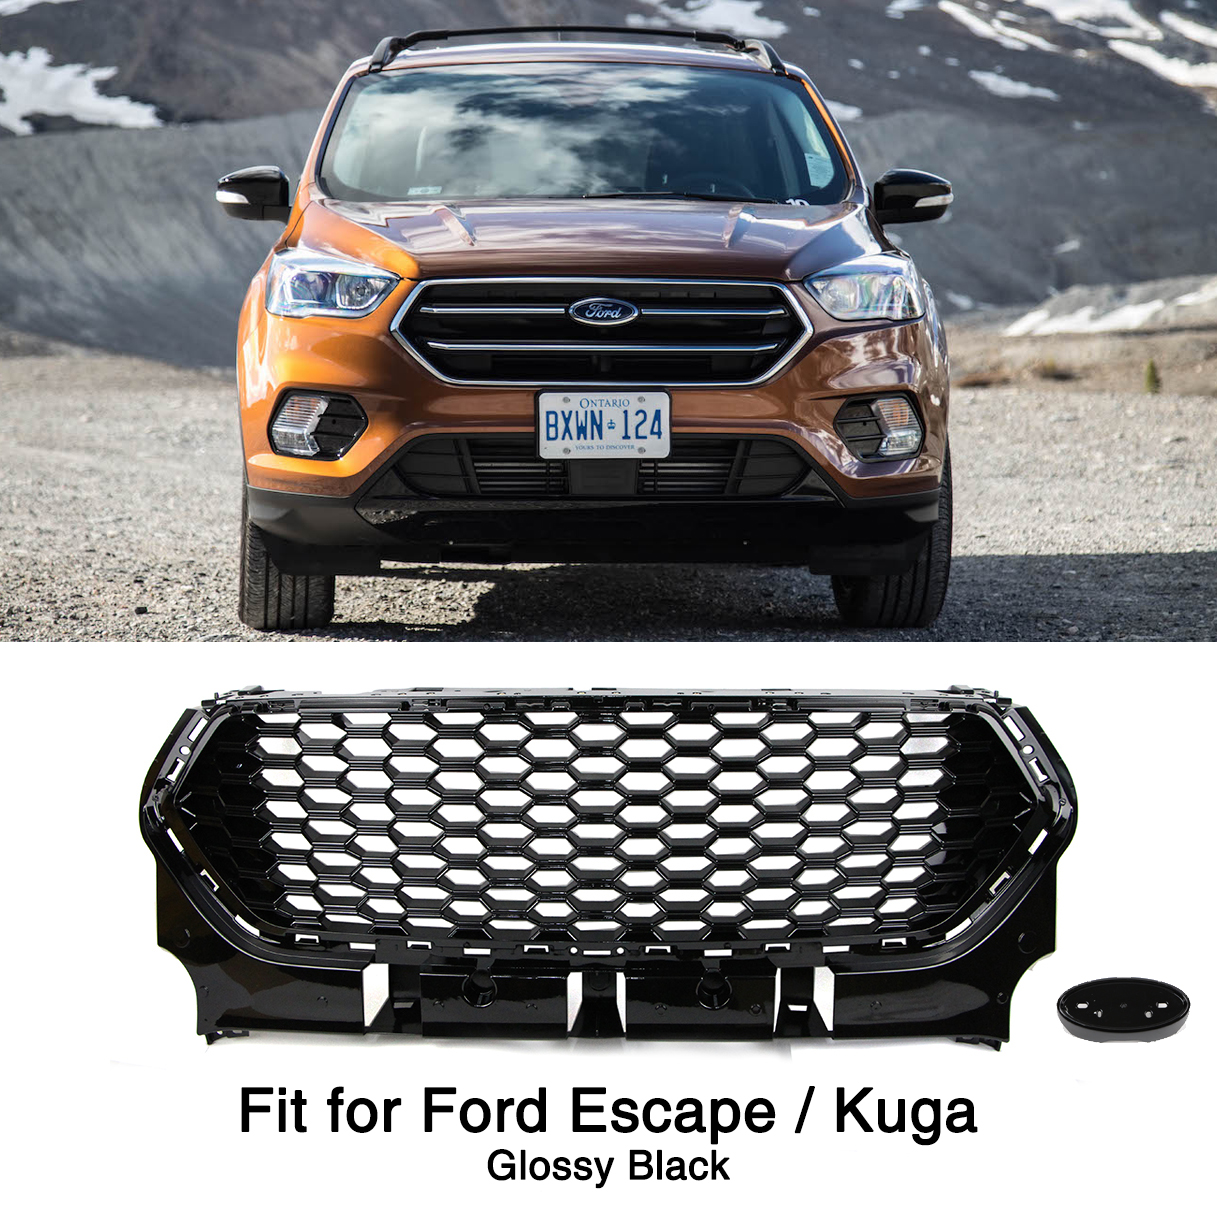 Glossy Black Front Bumper Grille for Ford Escape Kuga 2017 2018 2019 Honeycomb Mesh GrillGlossy Black Front Bumper Grille for Ford Escape Kuga 2017 2018 2019 Honeycomb Mesh Grill